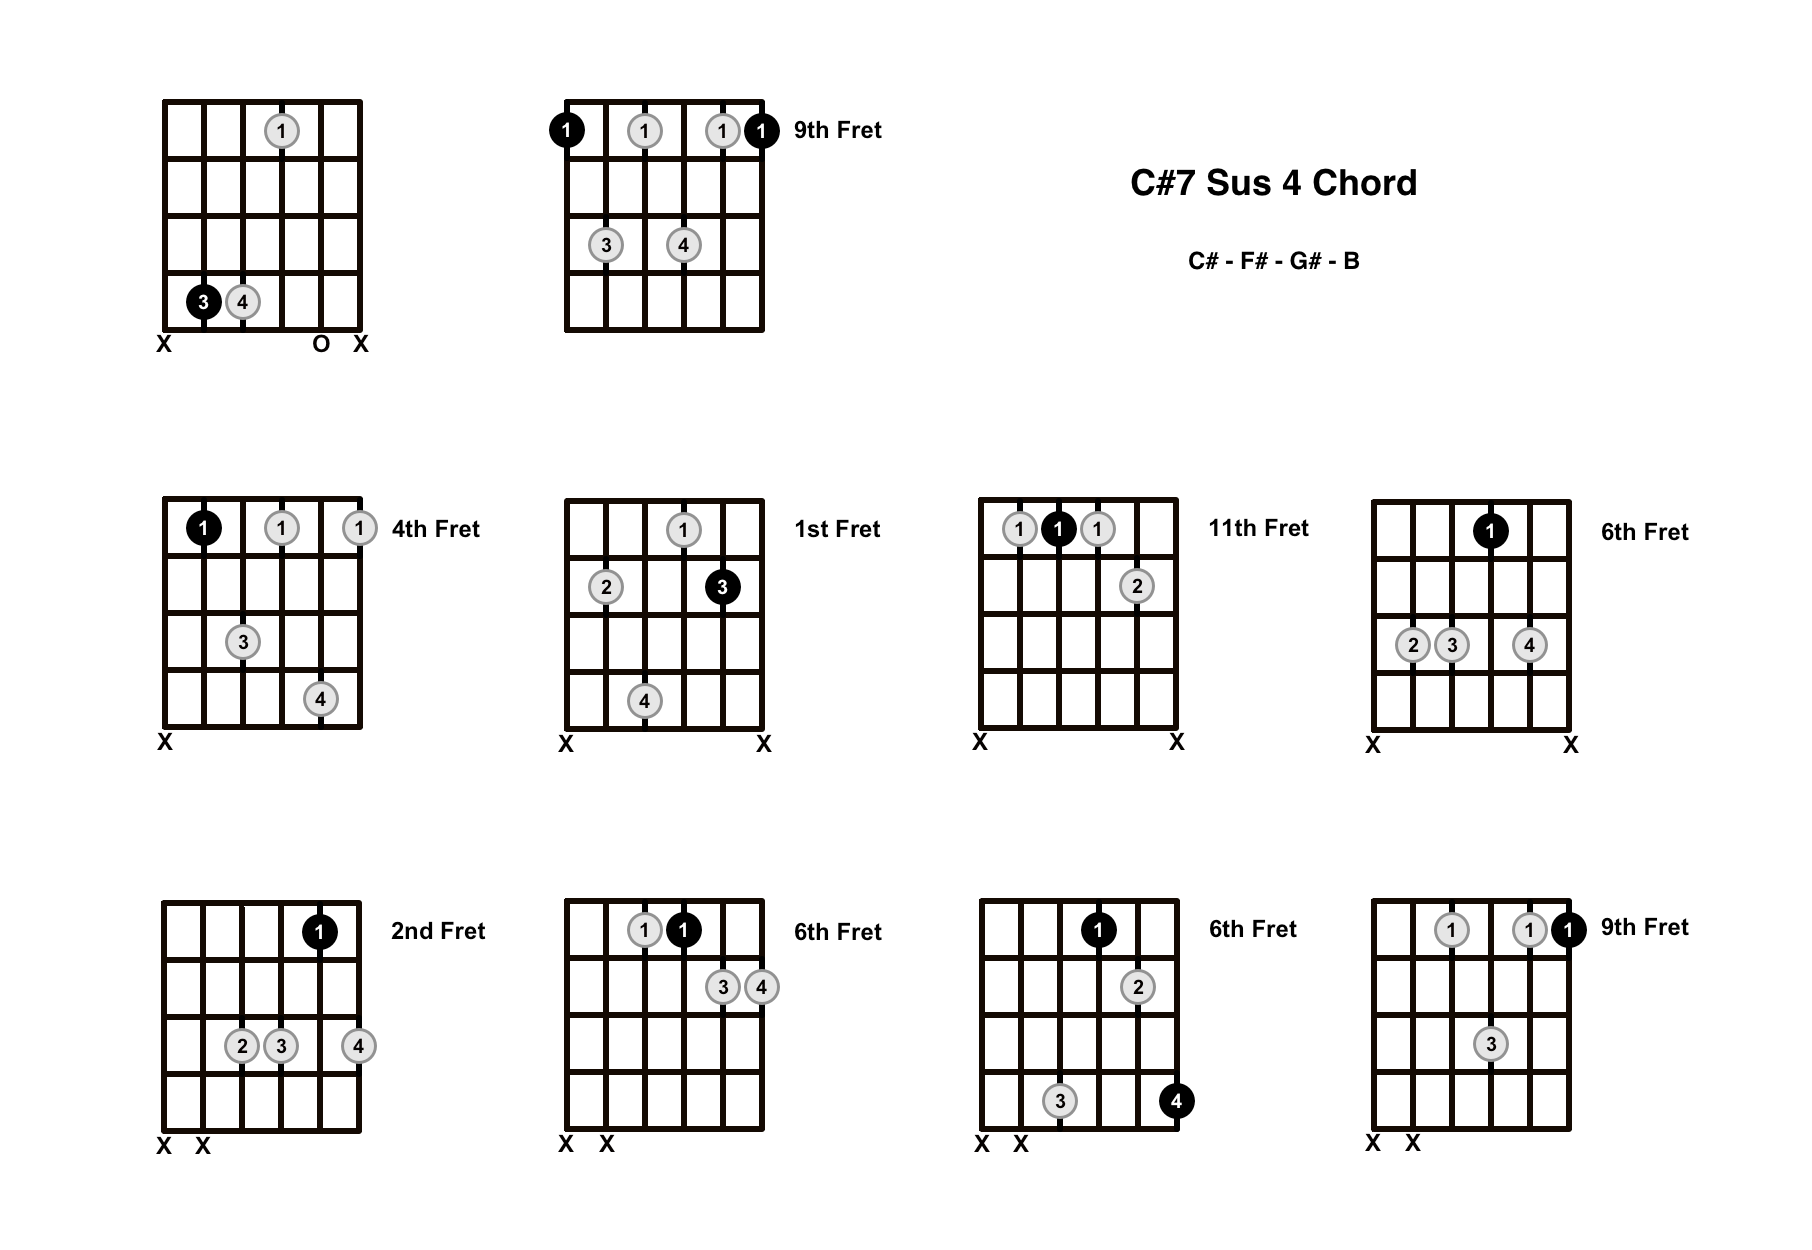 C#7 Sus 4 Chord On The Guitar (C Sharp 7 Suspended 4) – Diagrams, Finger Positions and Theory